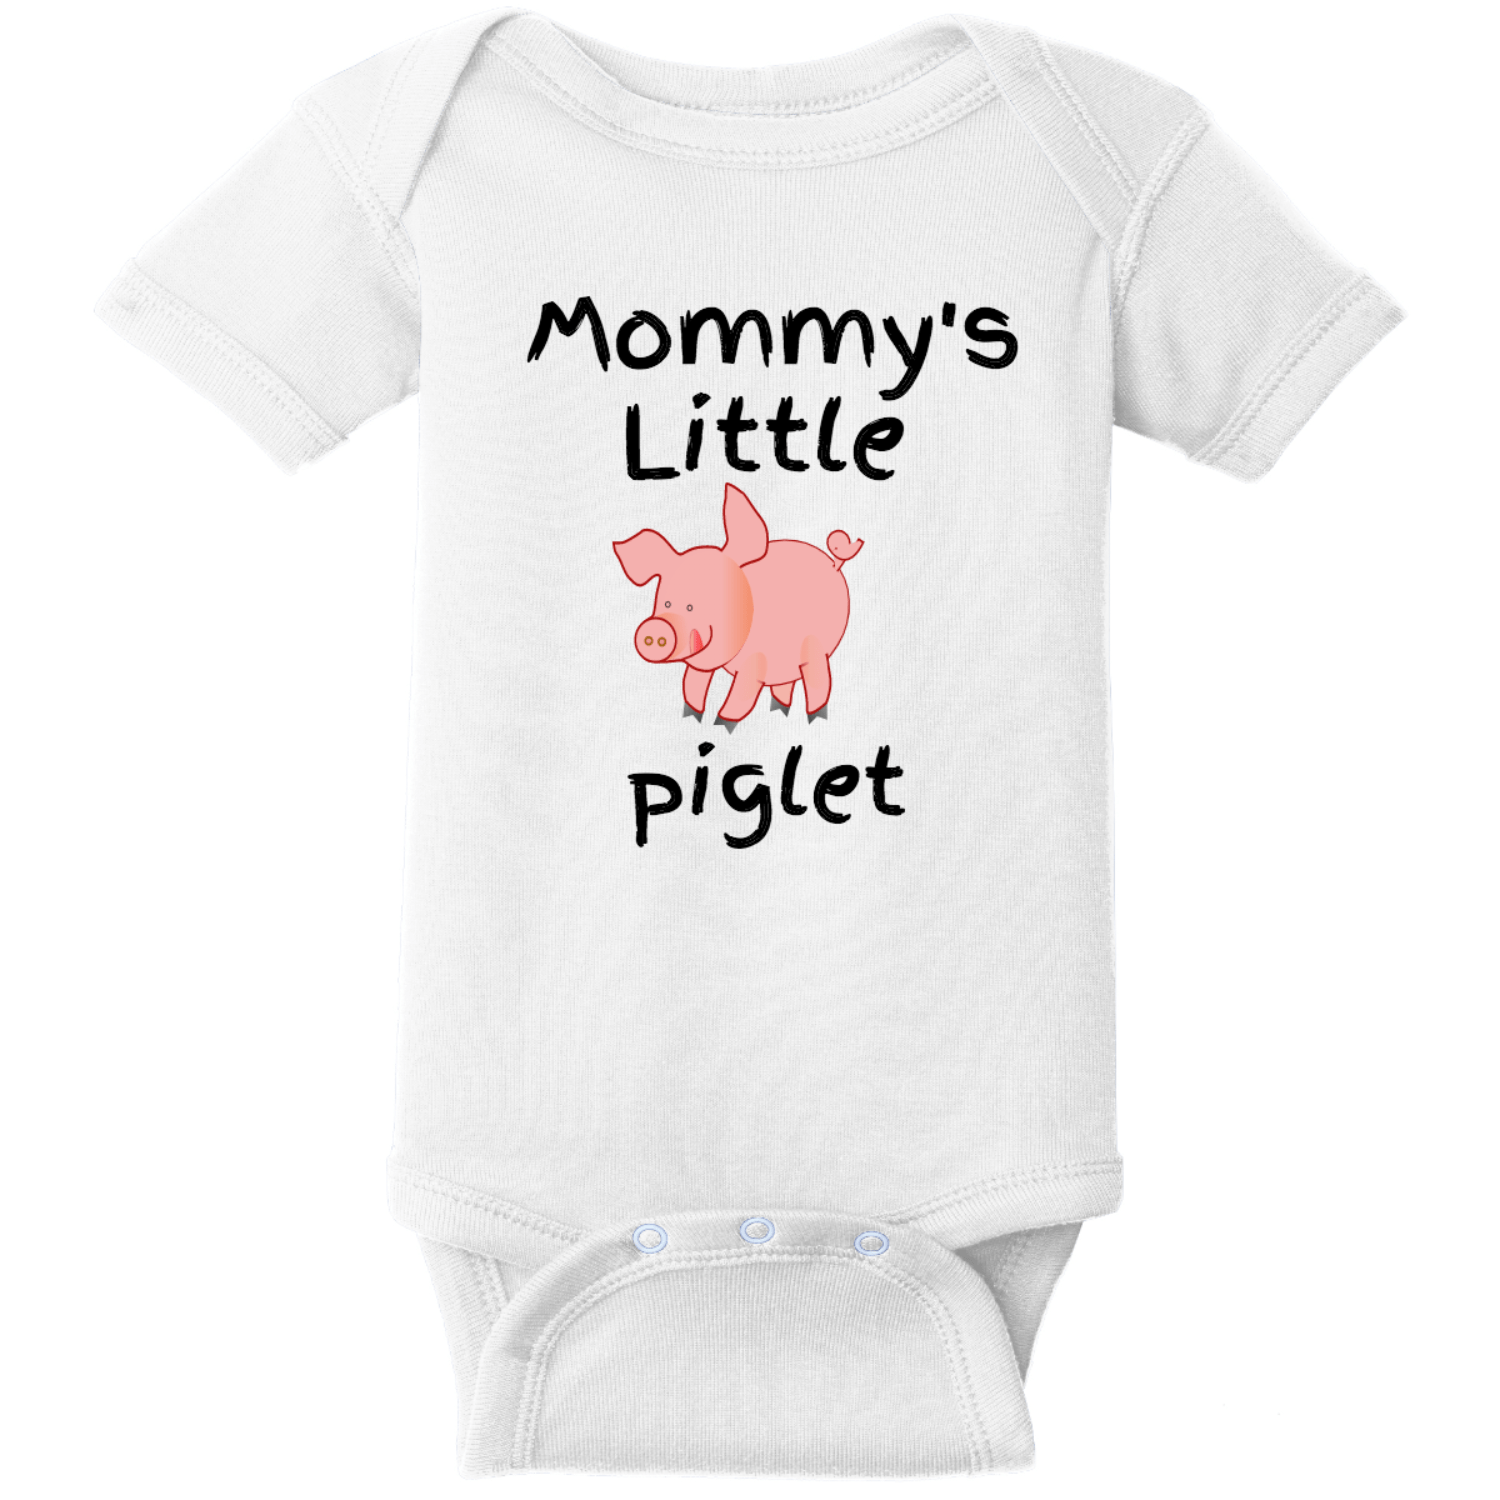 Mommy's Little Piglet Baby Bodysuit White Rabbit Skins Infant Short Sleeve Infant Rib Bodysuit RS4400